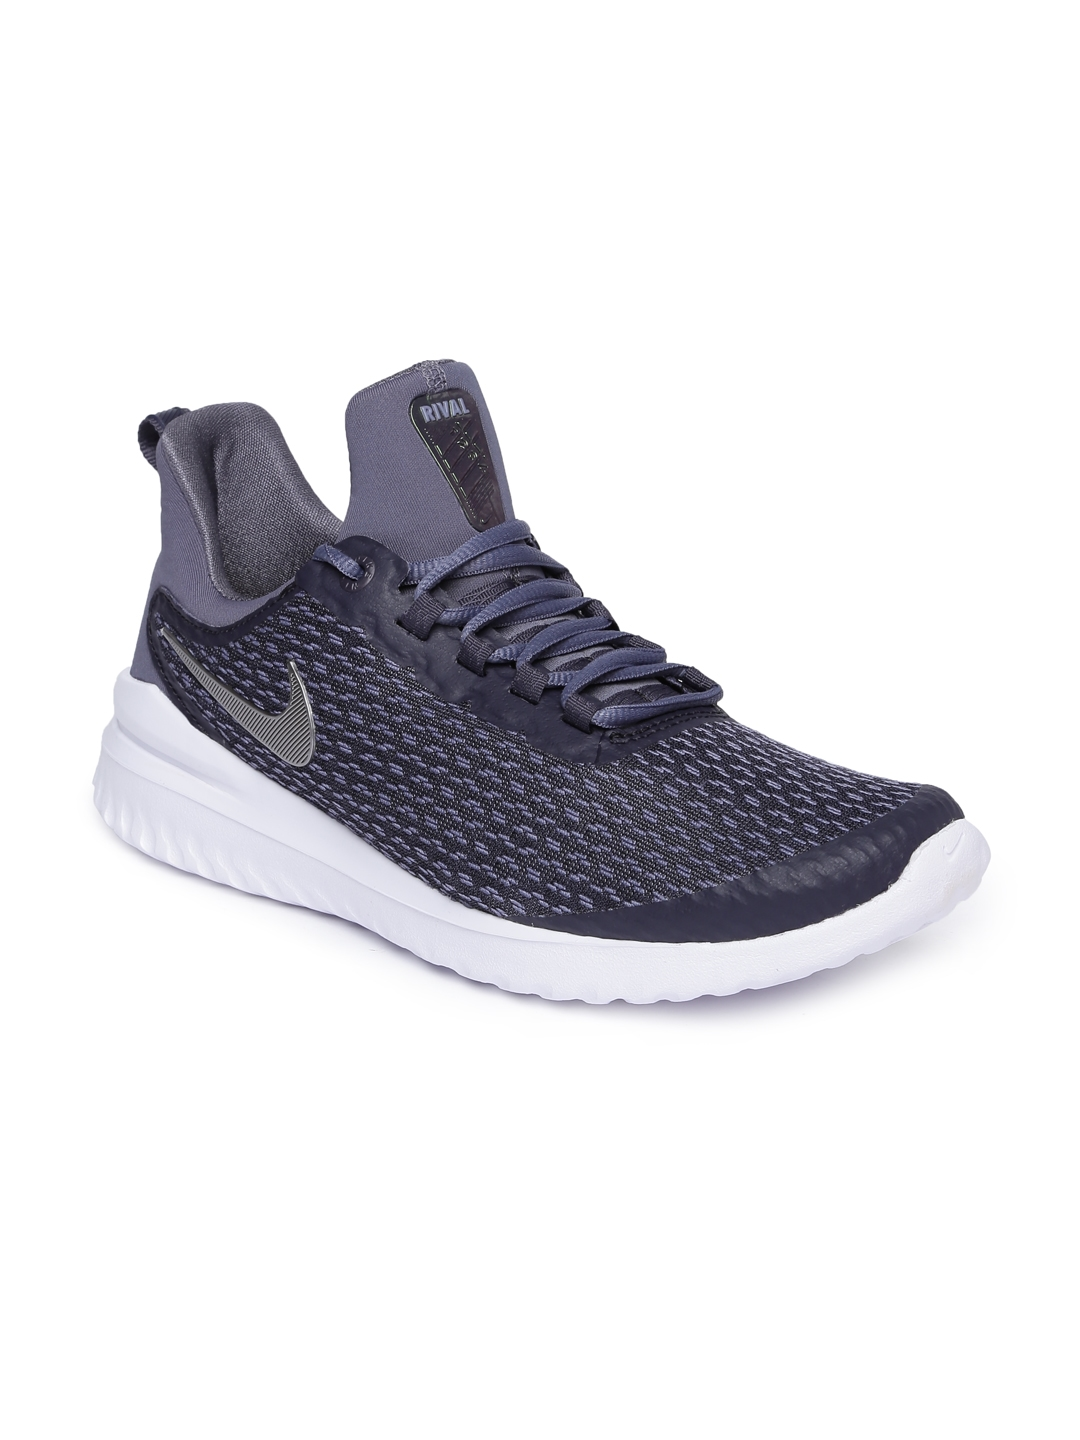 54c75859270 Buy Nike Men Grey RENEW RIVAL Running Shoes - Sports Shoes for Men ...